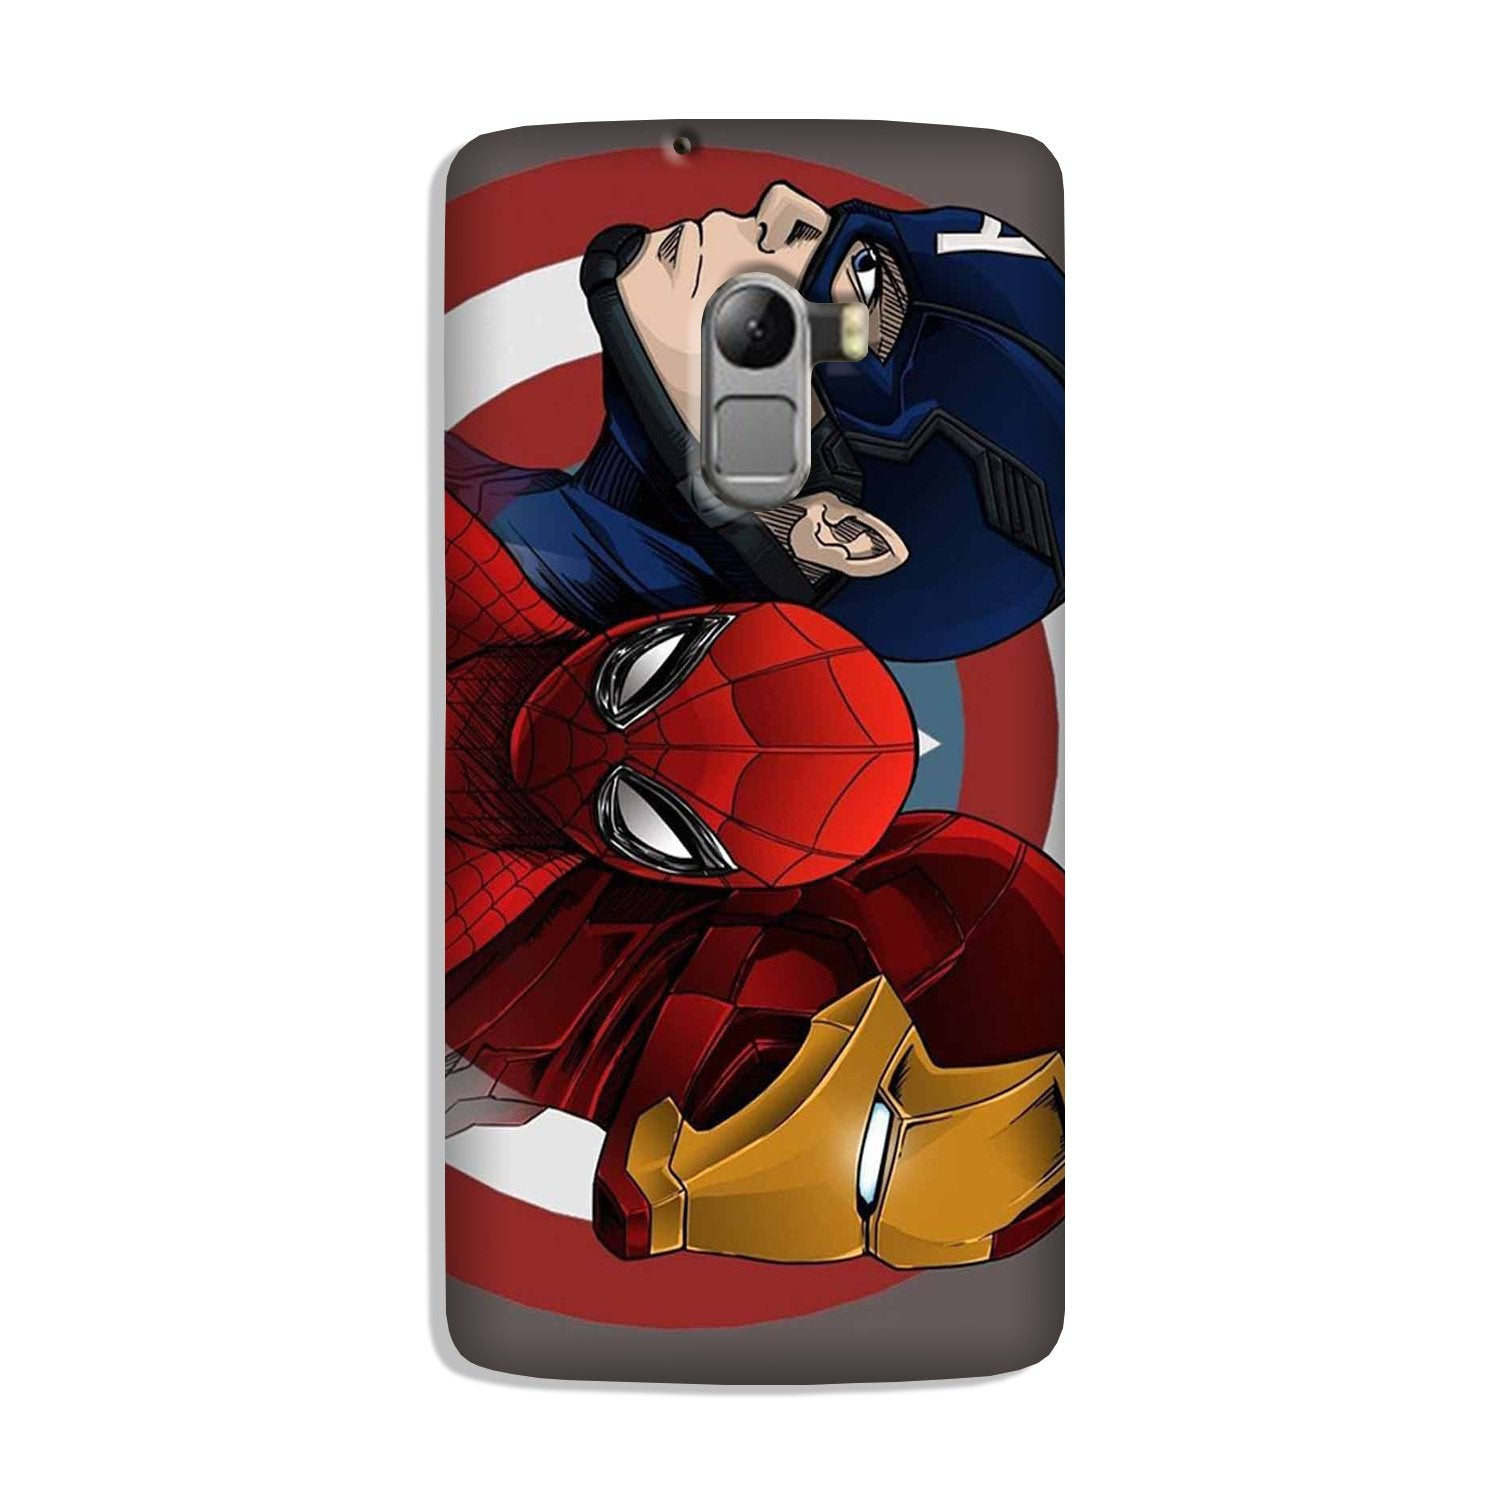 Superhero Mobile Back Case for Lenovo K4 Note (Design - 311)